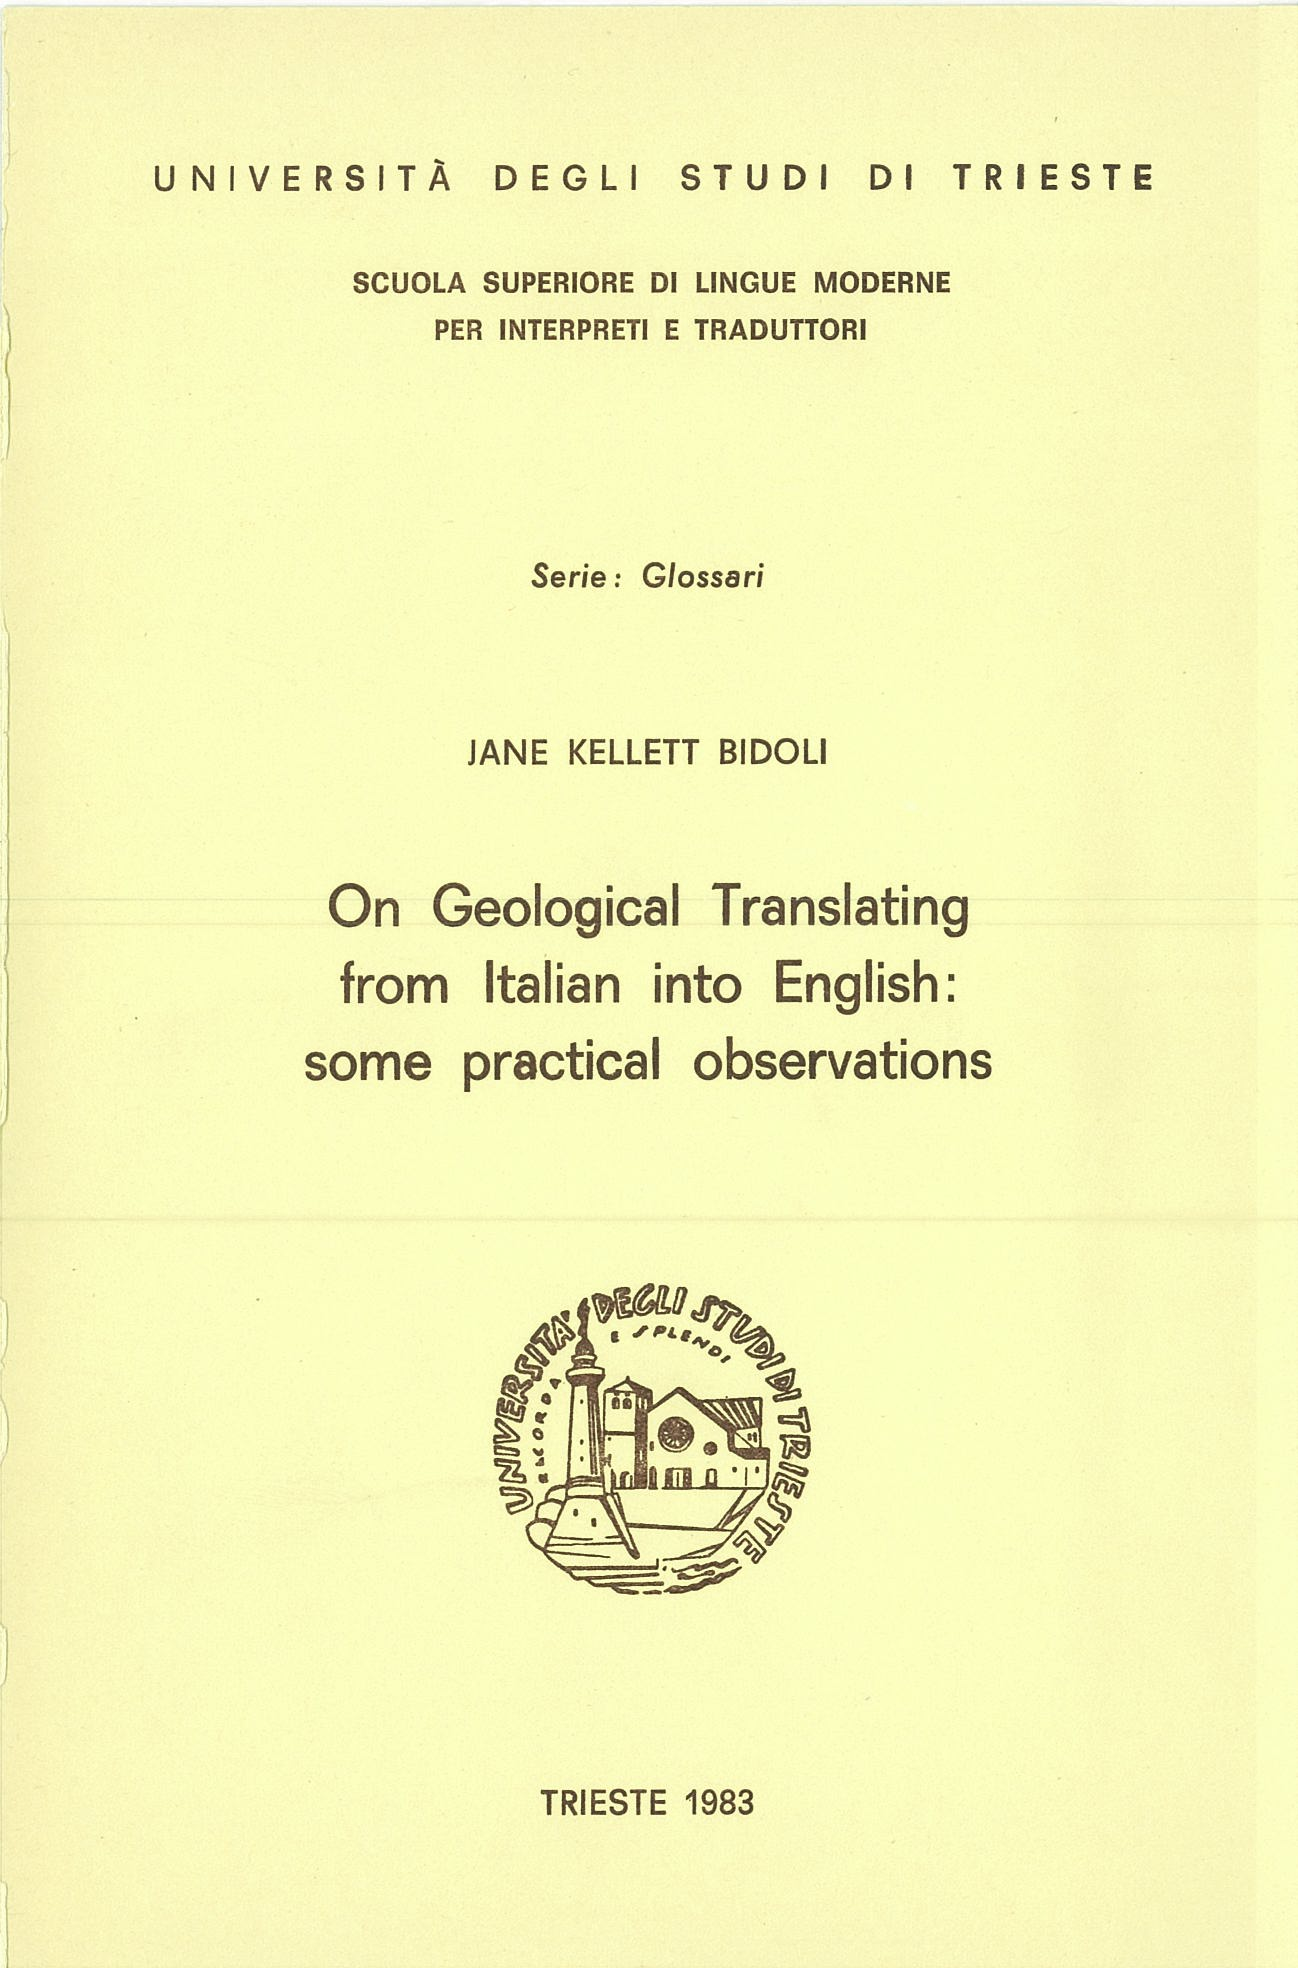 On Geological Translating from Italian to English: some practical observations